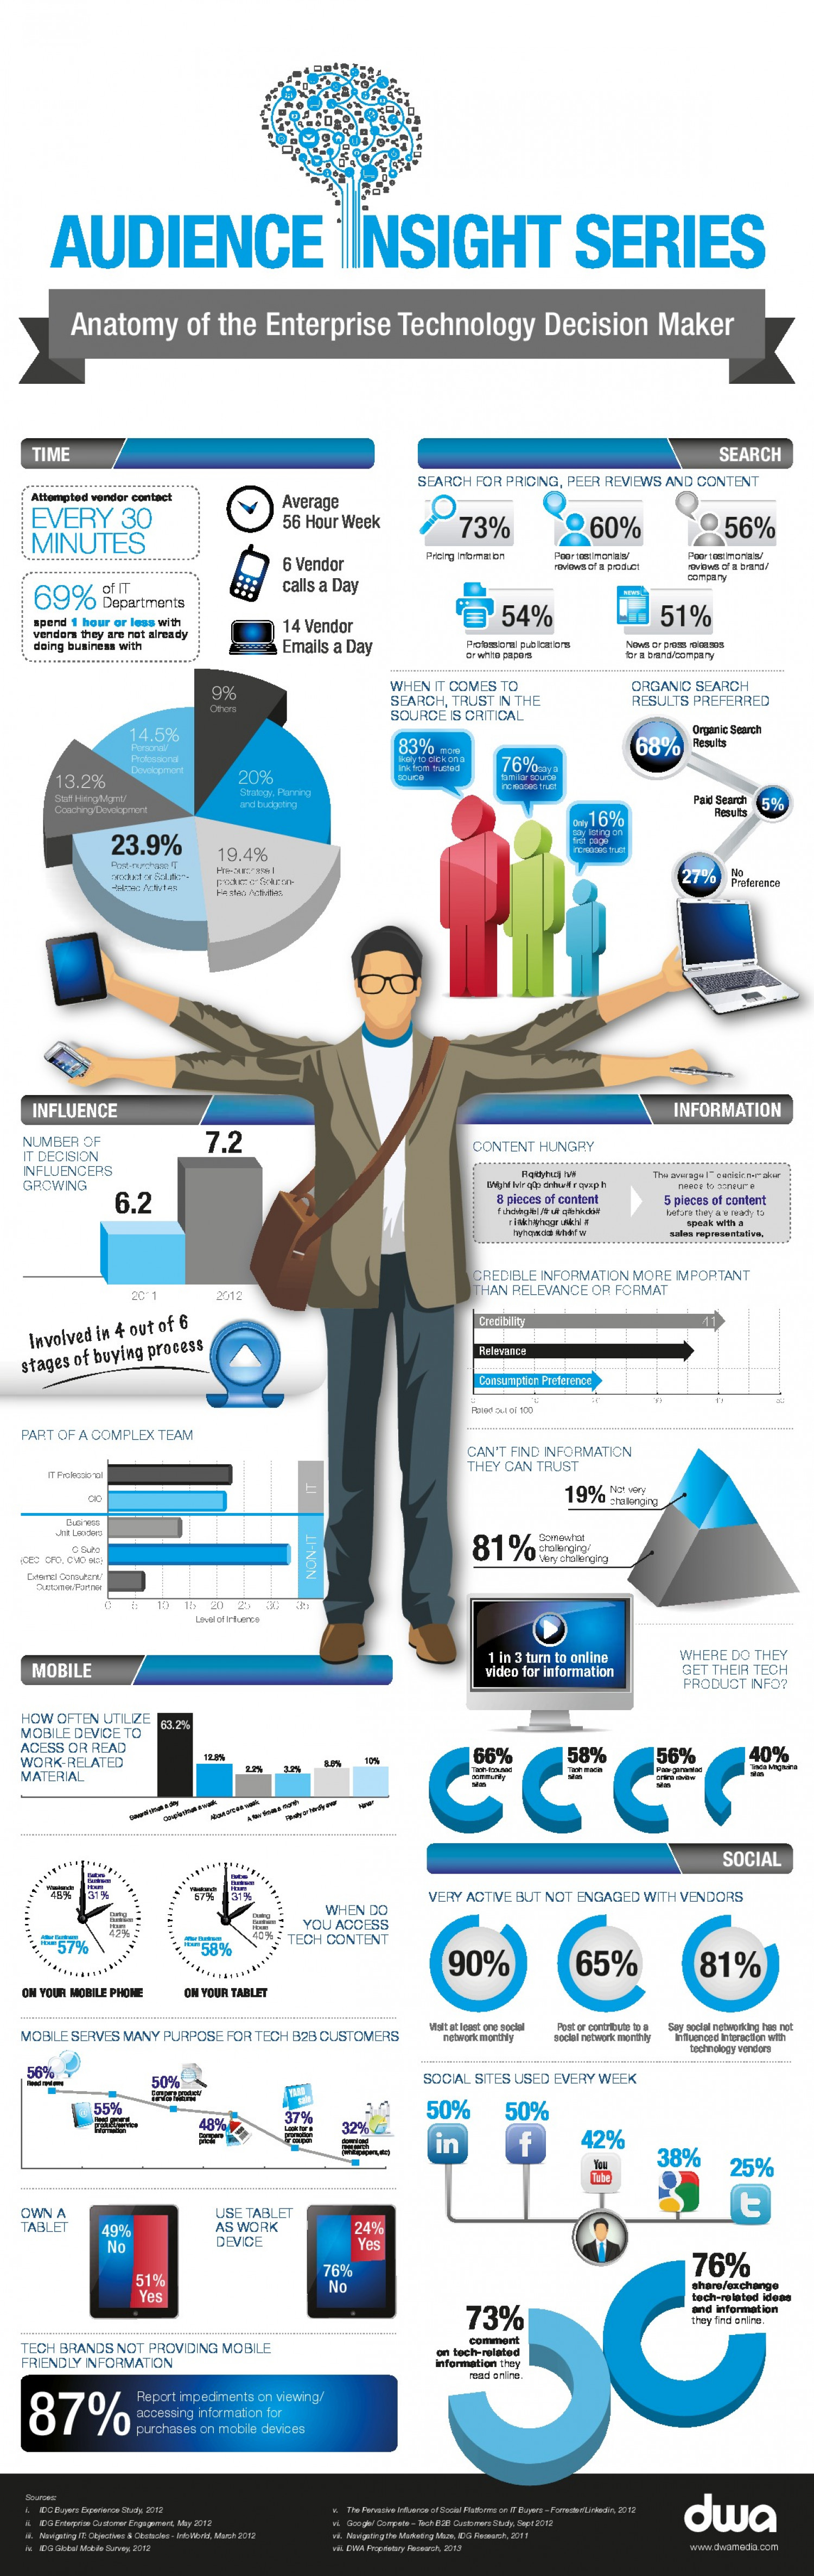 Anatomy of the Enterprise Technology Decision Maker Infographic